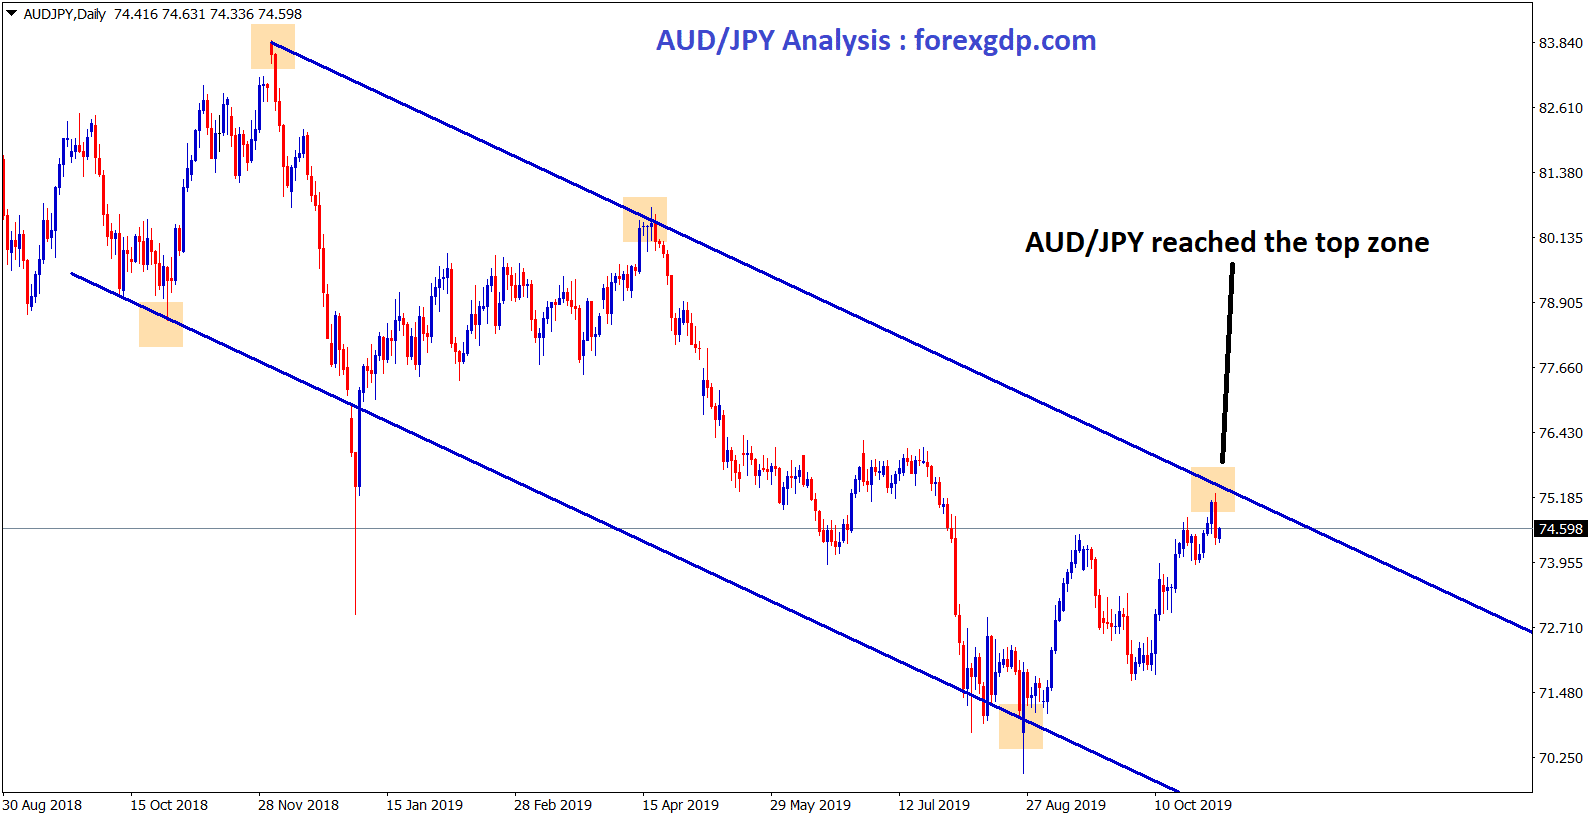 AUD/JPY Forex Trading | AUD/JPY Live Price | Trading AUD/JPY | blogger.com